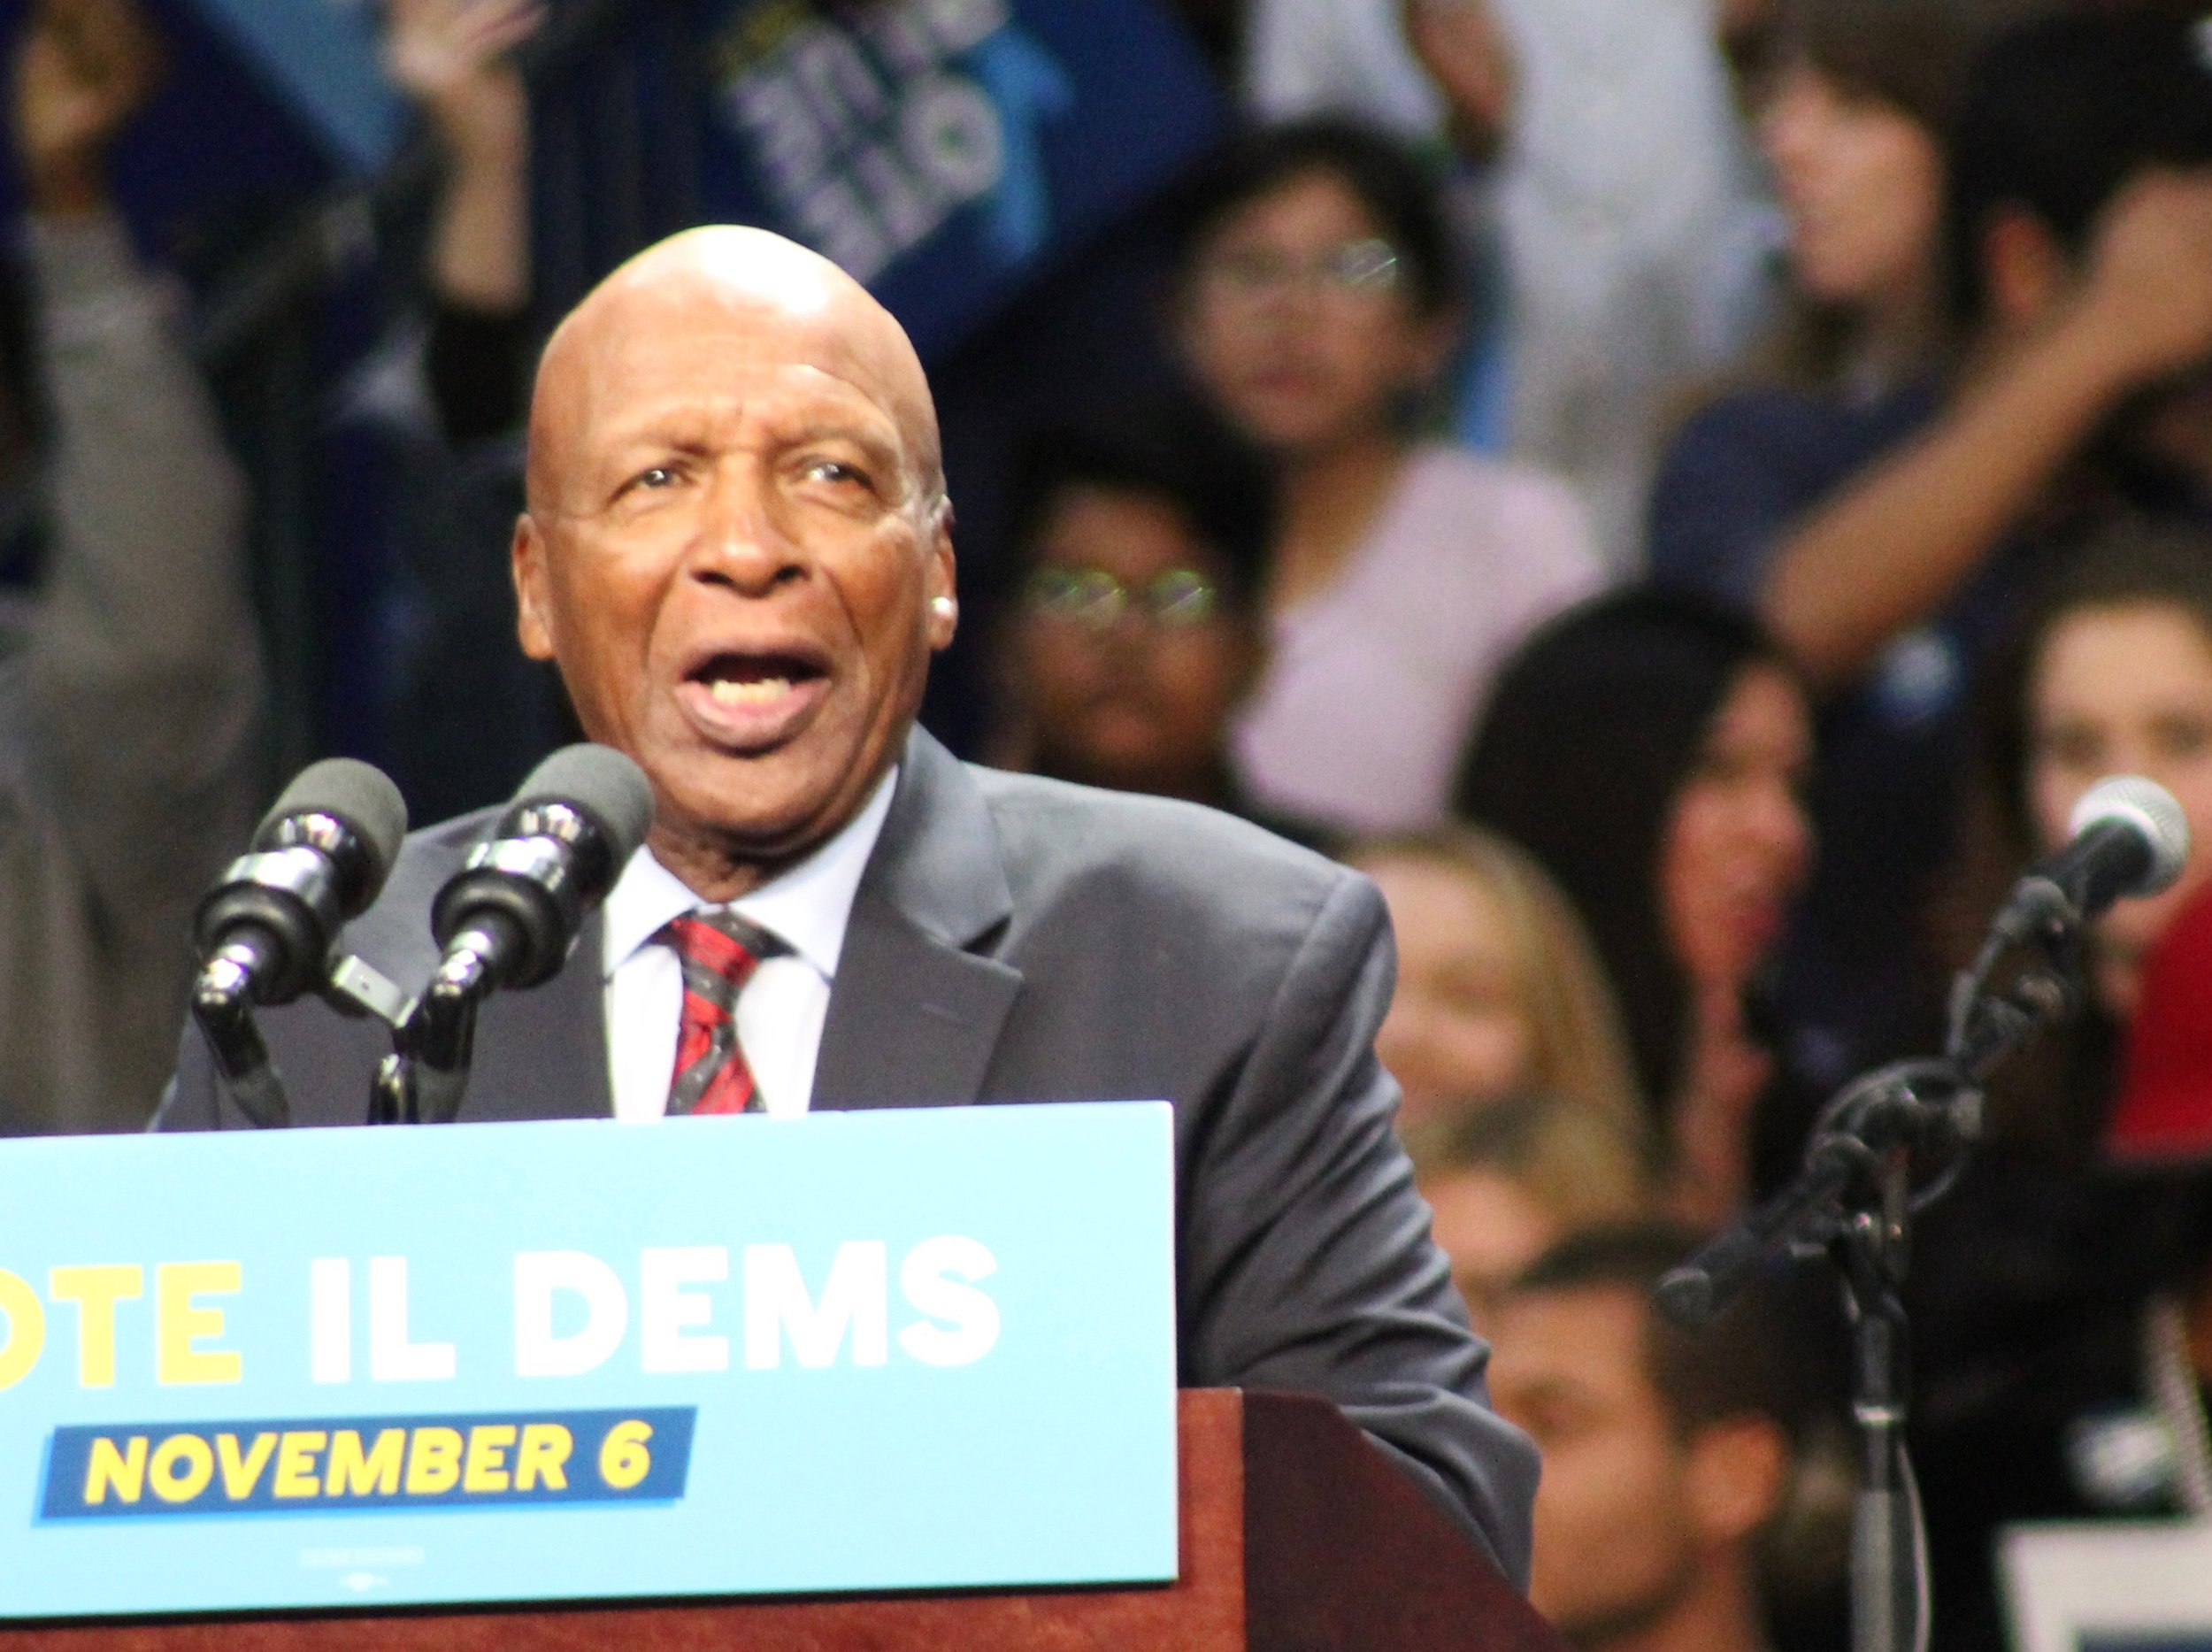 Secretary of State Jesse White says the state does not share information with federal agents for facial-recognition searches. (One Illinois/Ted Cox)